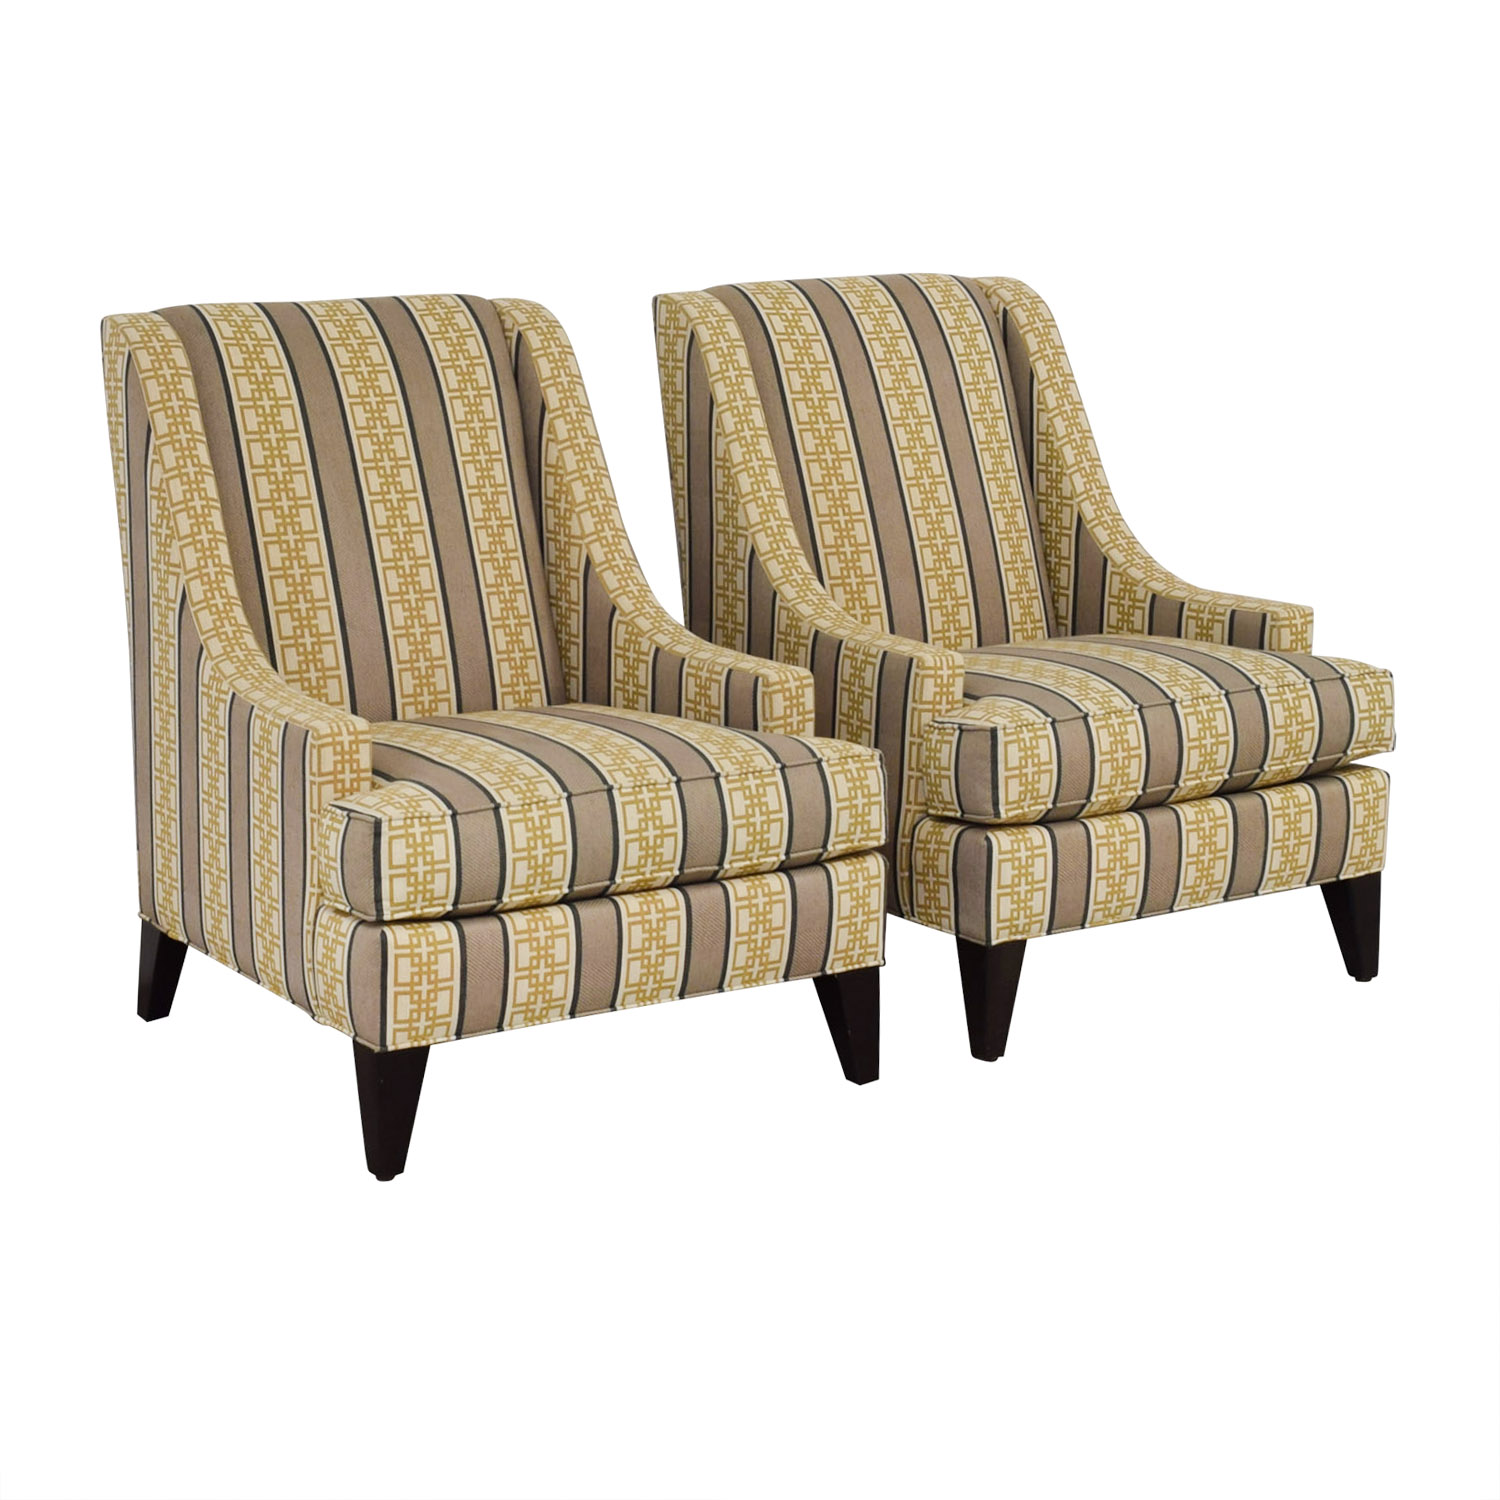 Ethan Allen Ethan Allen Emerson Multi-Colored Geometric Pattern Accent Chairs coupon